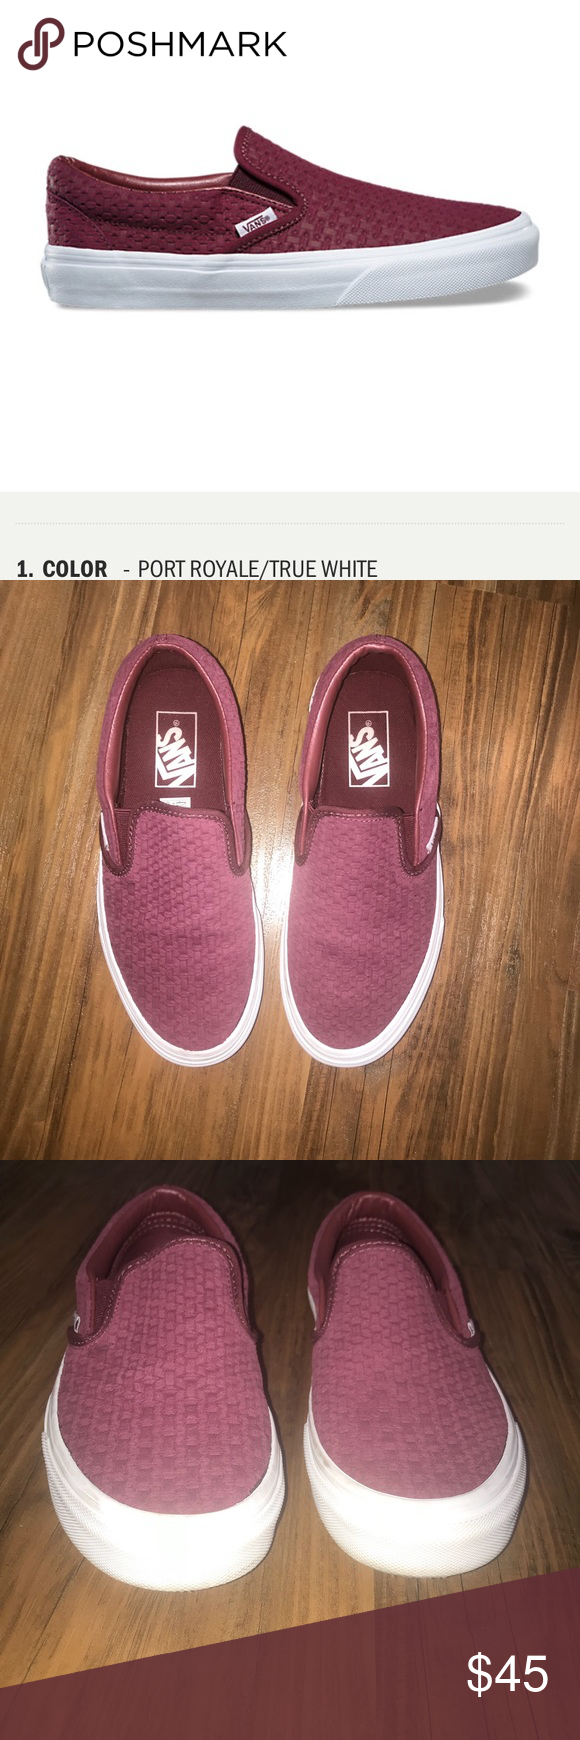 9373d8b8a6 Vans SUEDE EMBOSSED WEAVE SLIP-ON Pre owned